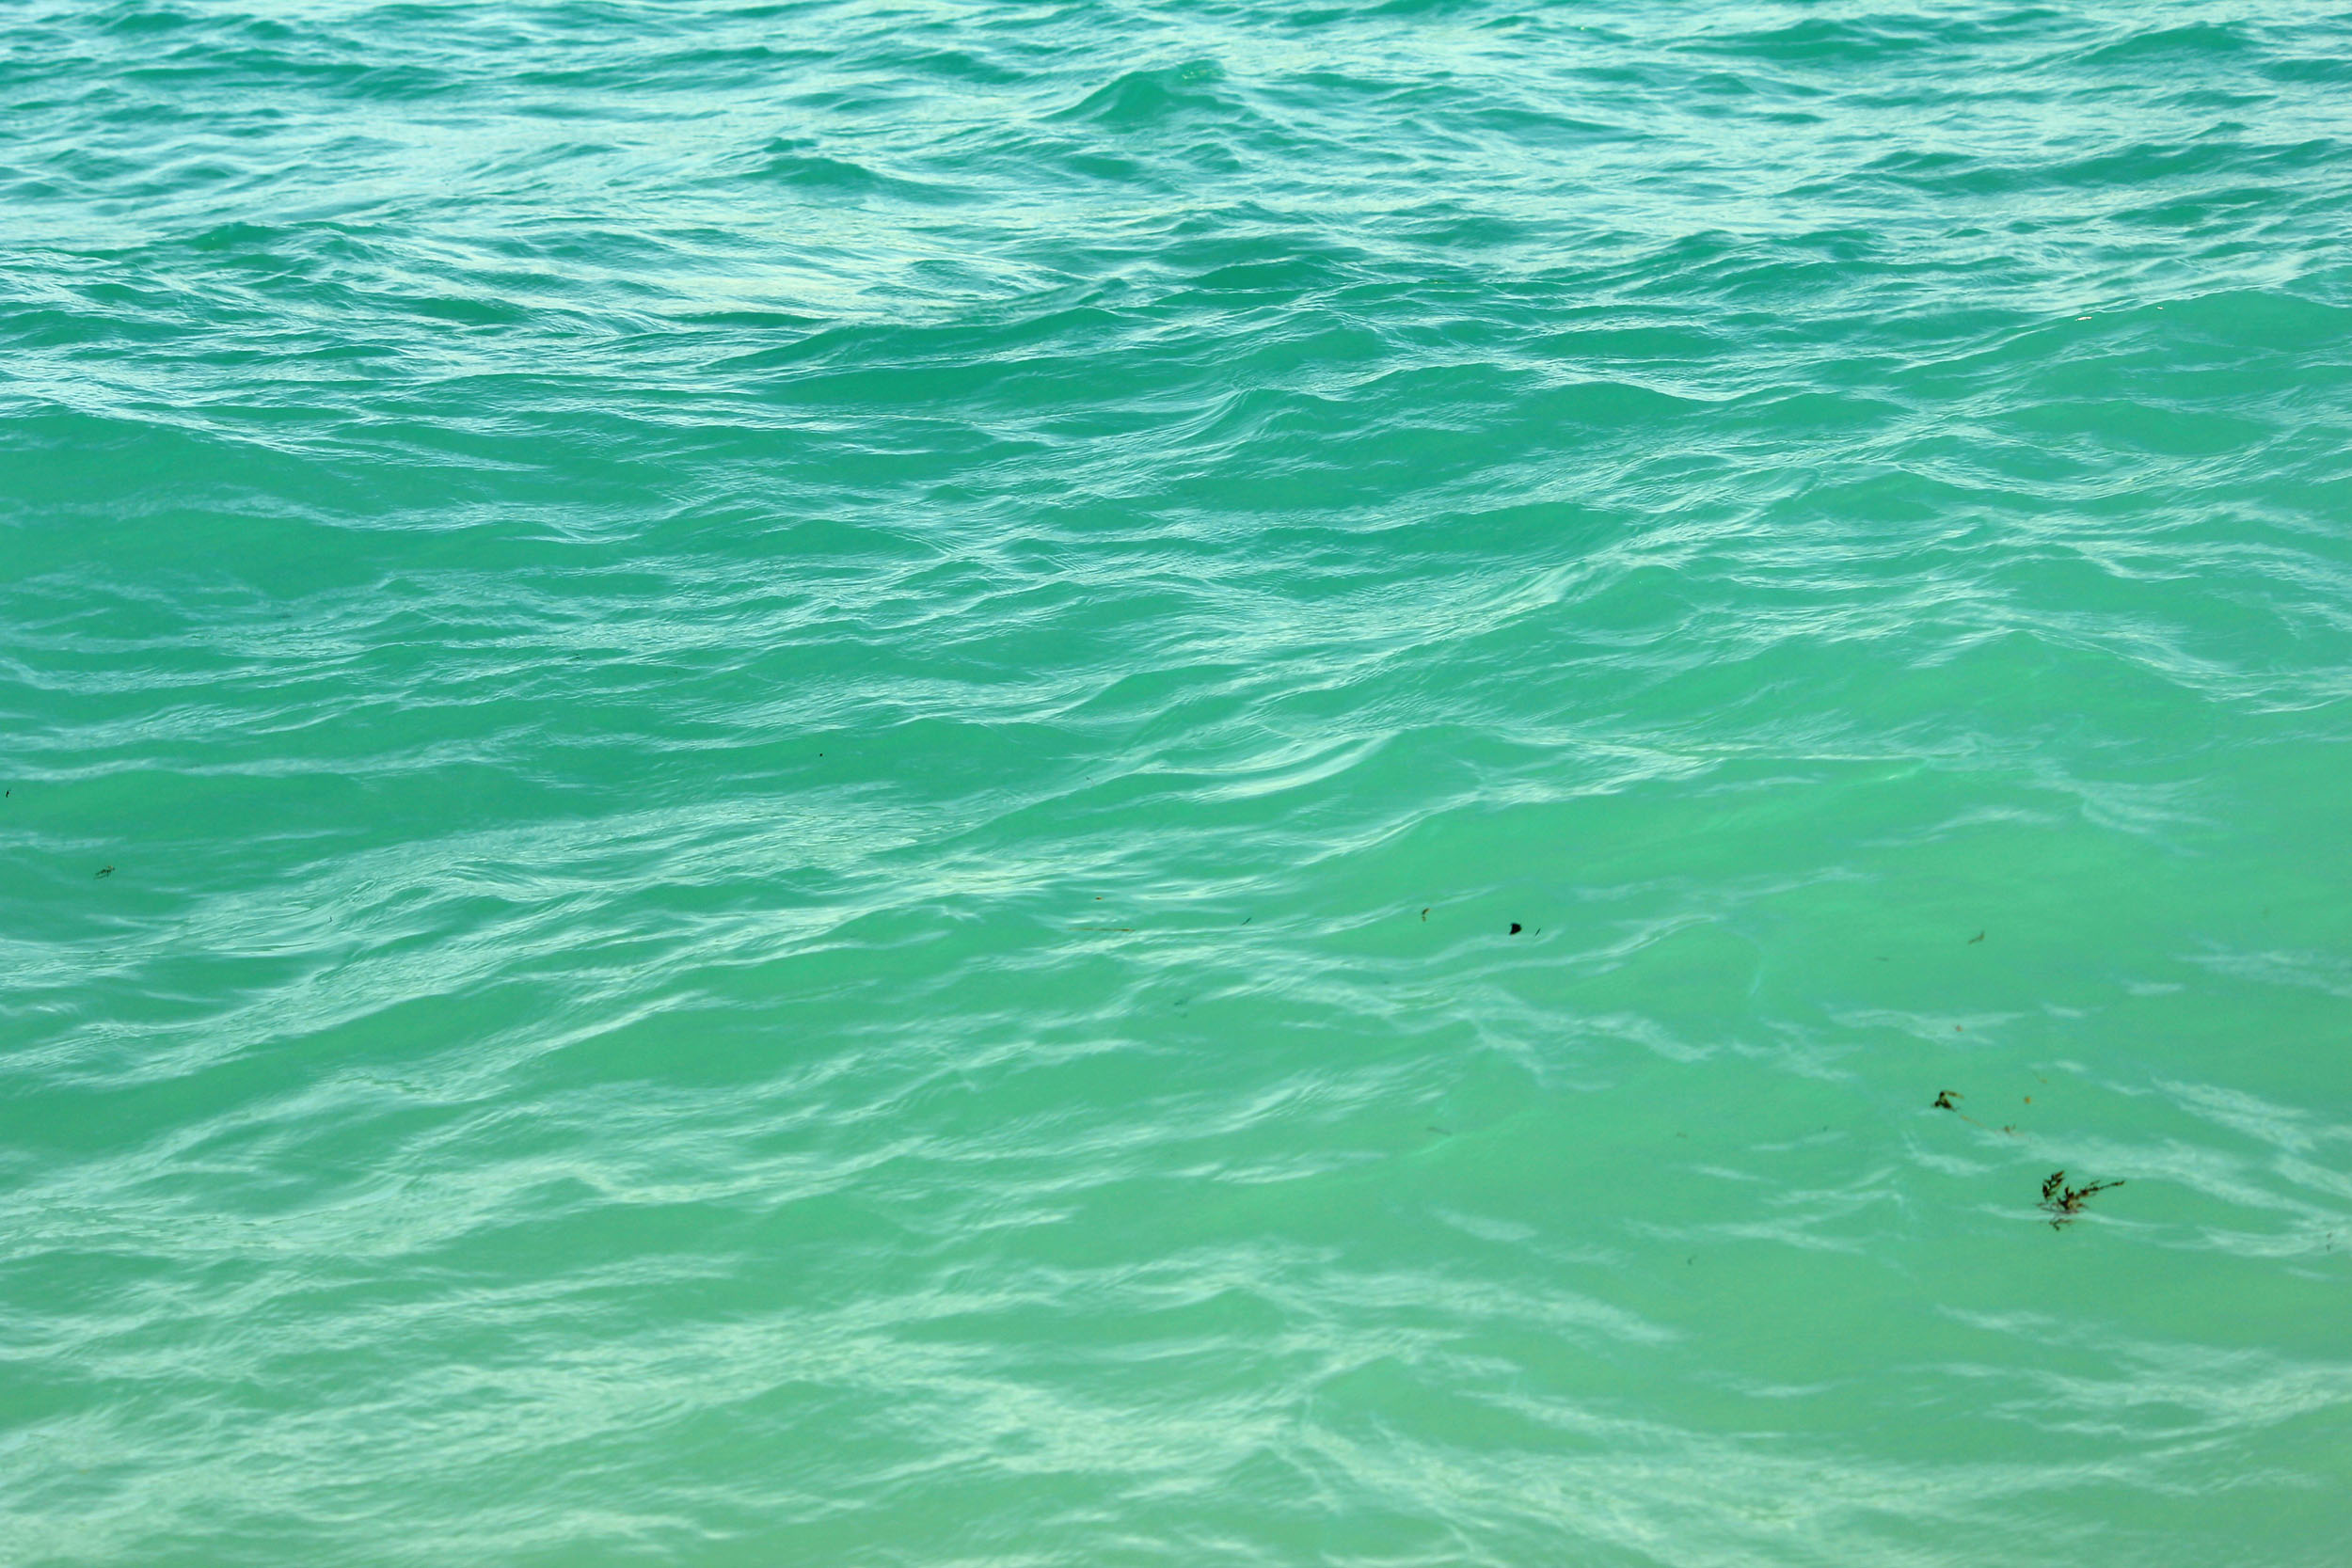 Green Water : Blue-green water at Miami, Florida - Free Public Domain Stock Photo